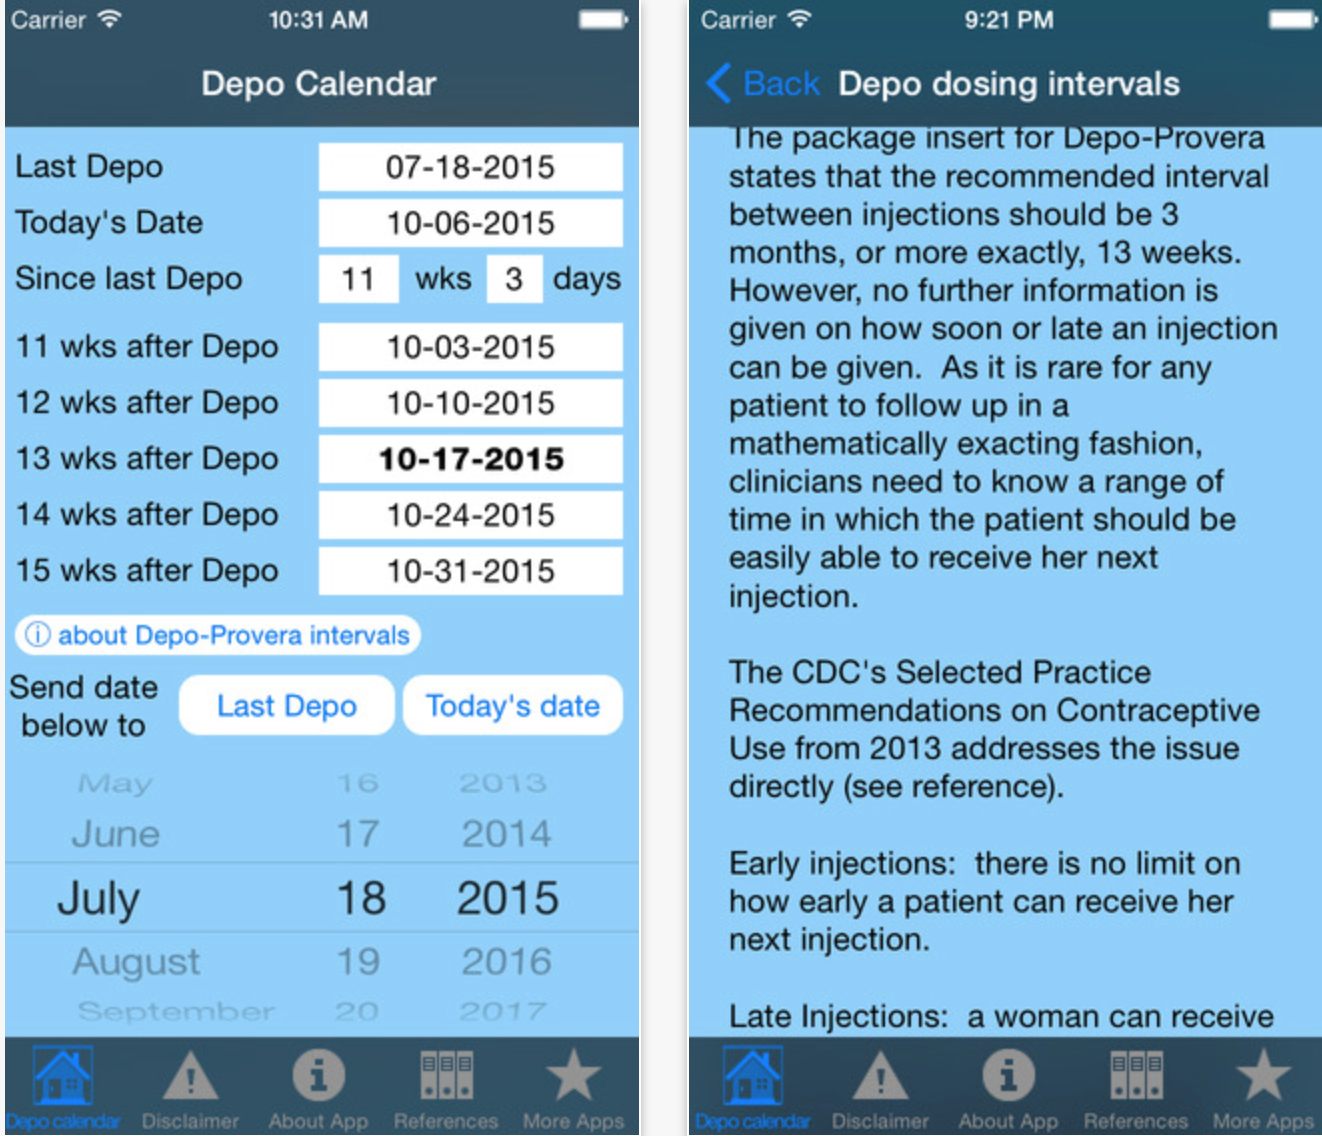 Depo Calendar App Could Significantly Improve Contraception with regard to Depo Schedule For 2020